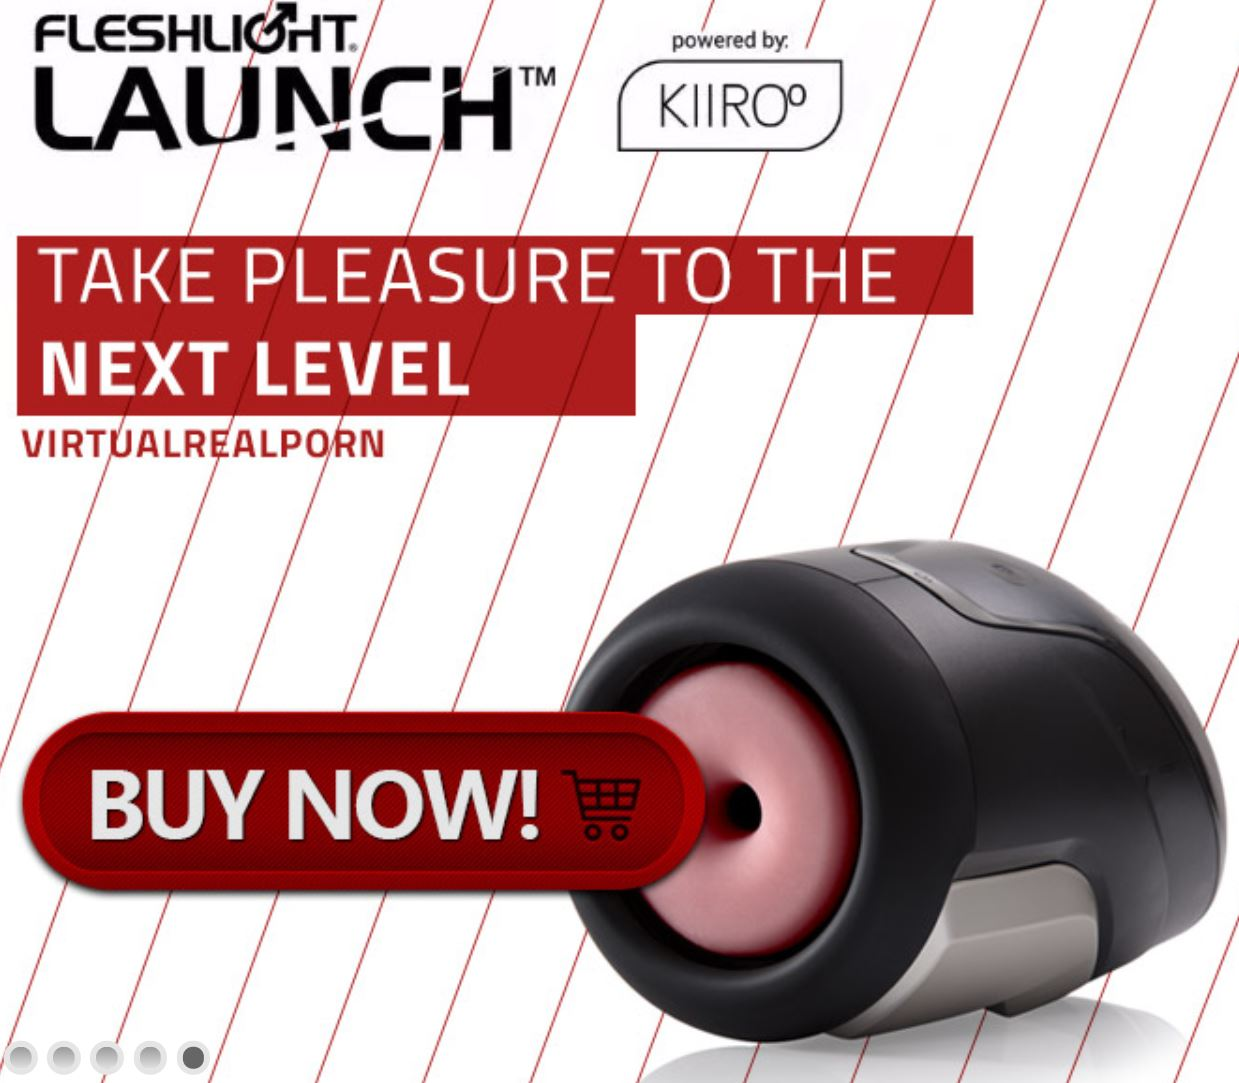 Fleshlight Launch Kirroo